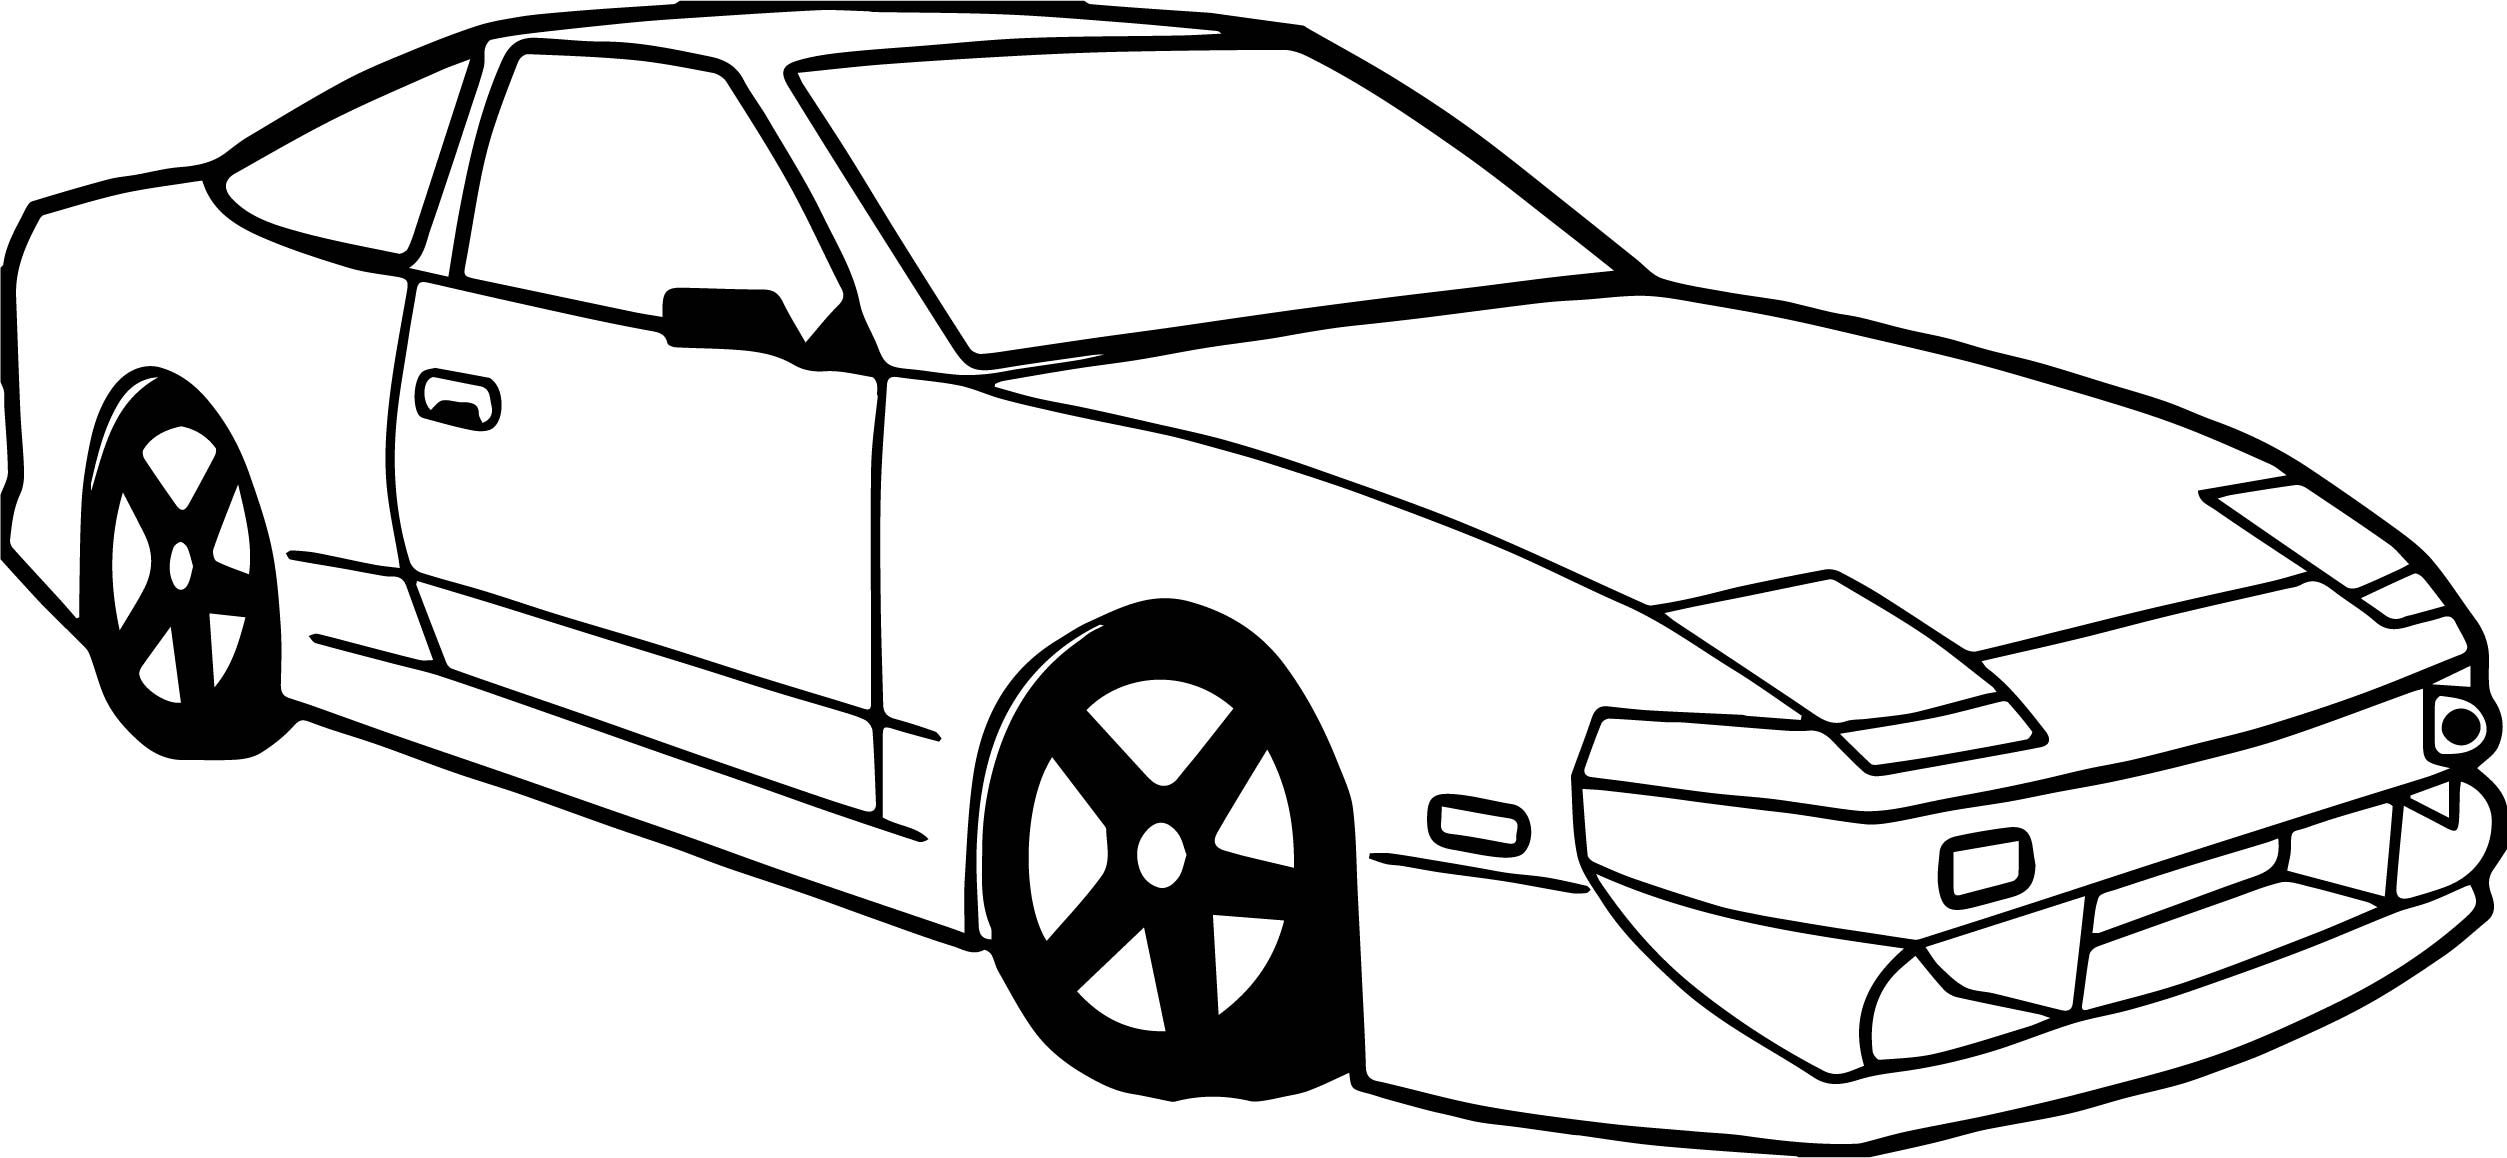 Toy Car Mazda Coloring Page